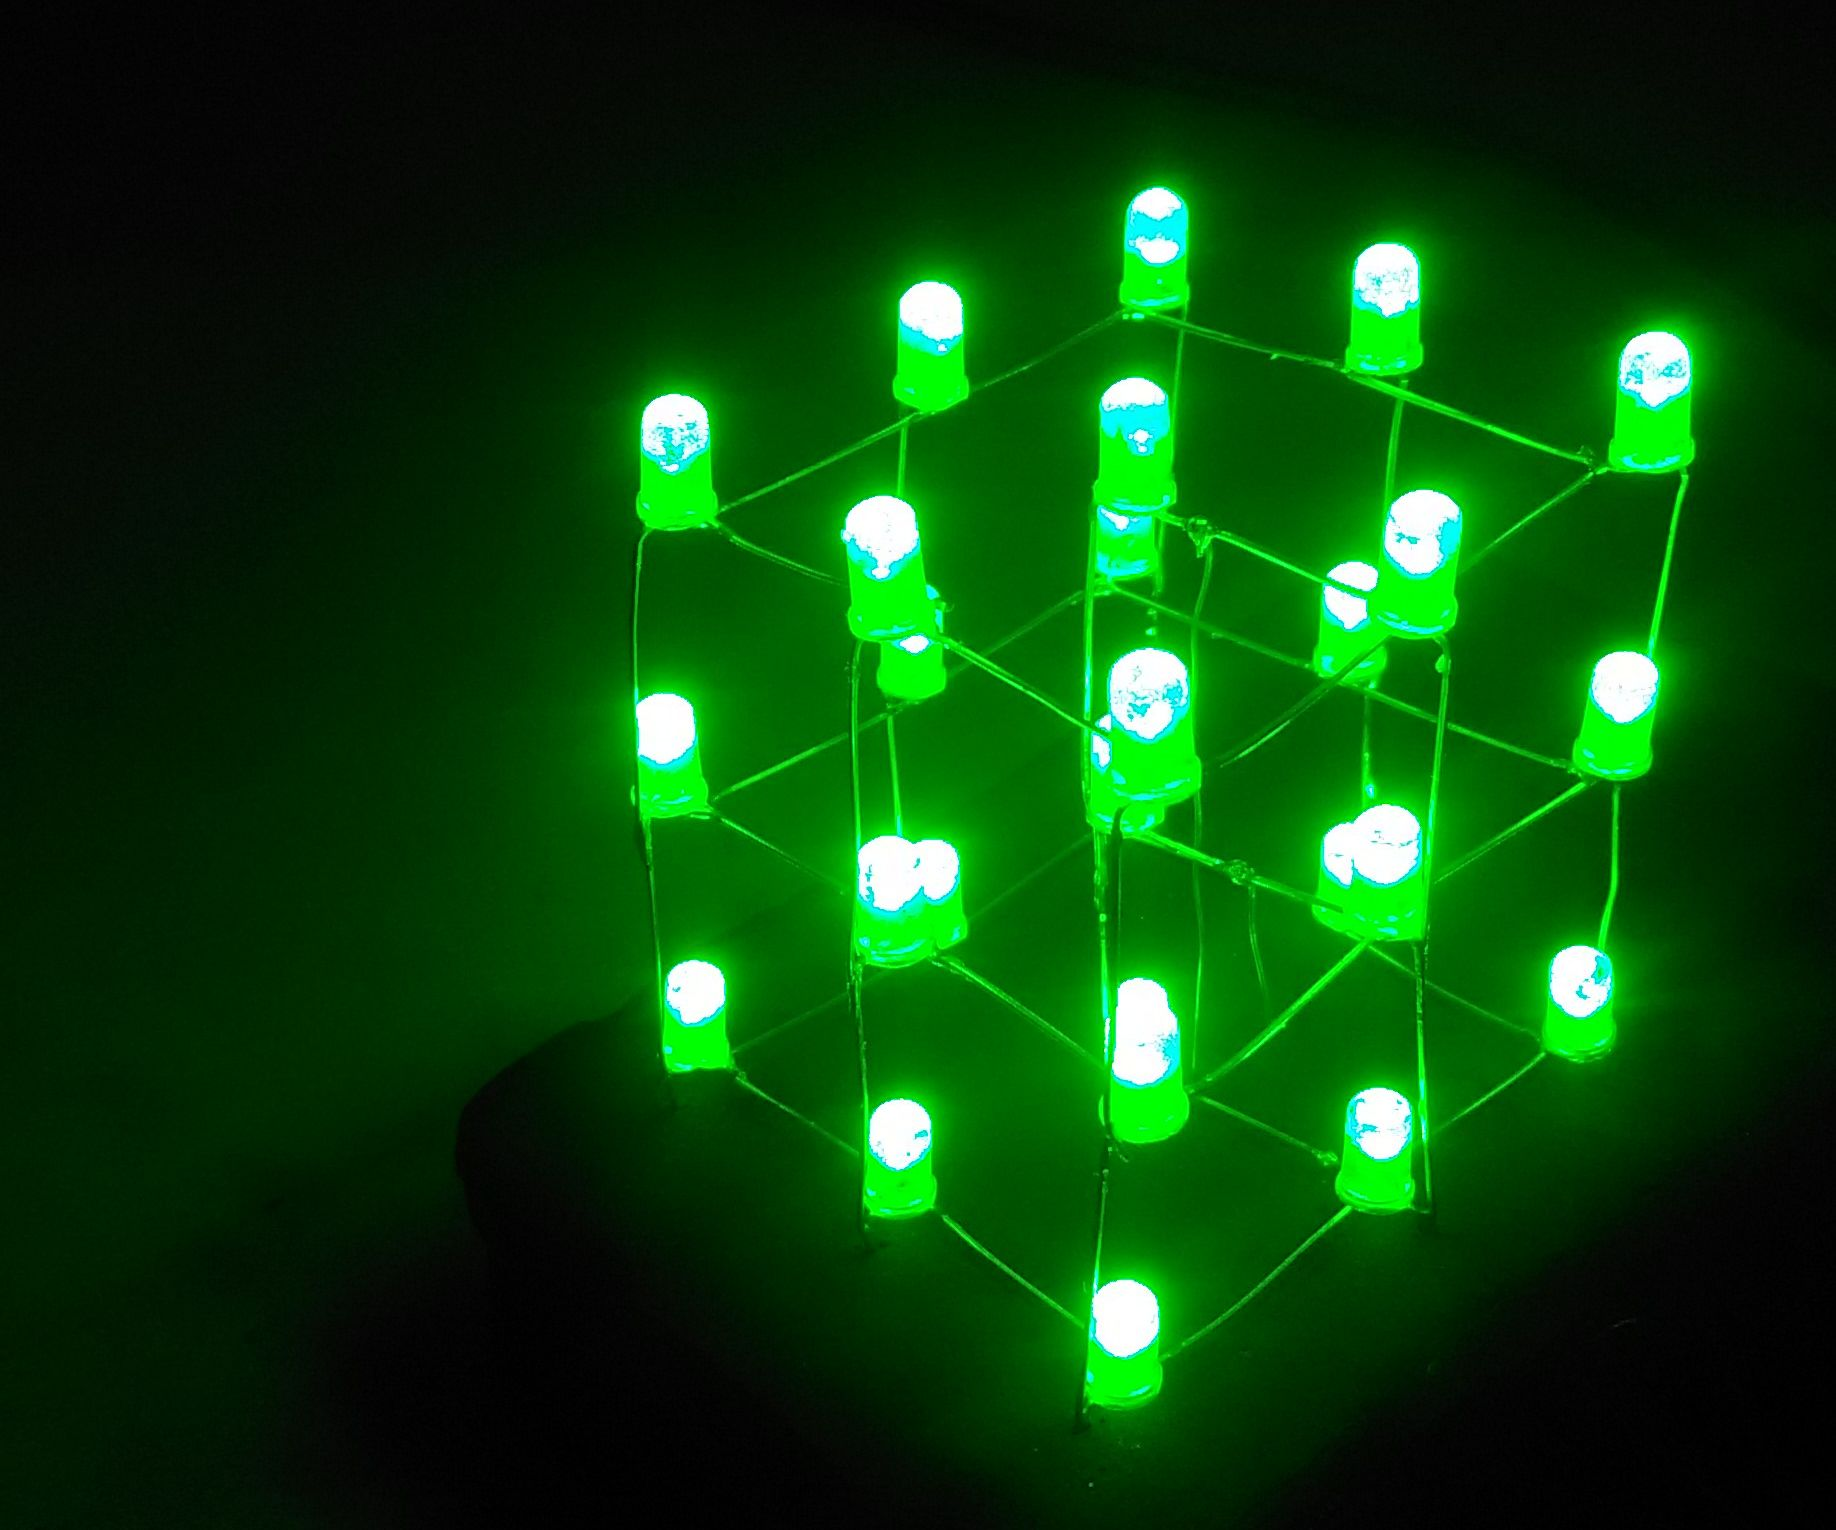 3x3x3 LED Cube With Bluetooth (Android)